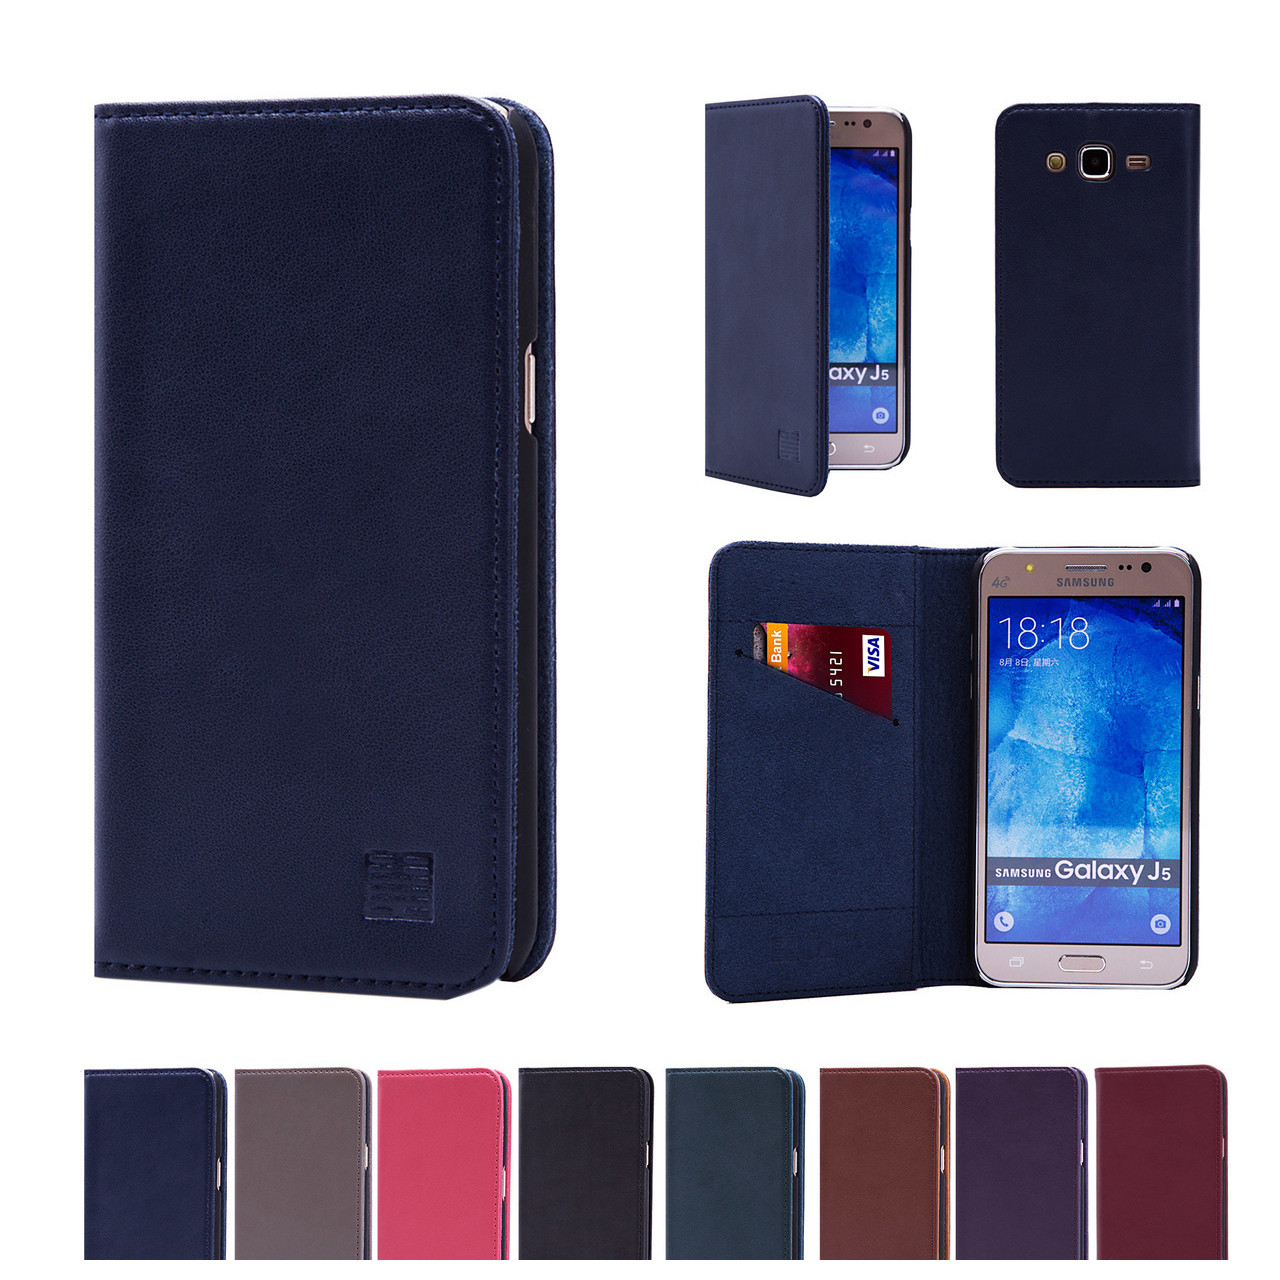 Samsung Galaxy J5 2015 Samsung Galaxy J5 2015 Classic Real Leather Book Wallet Case